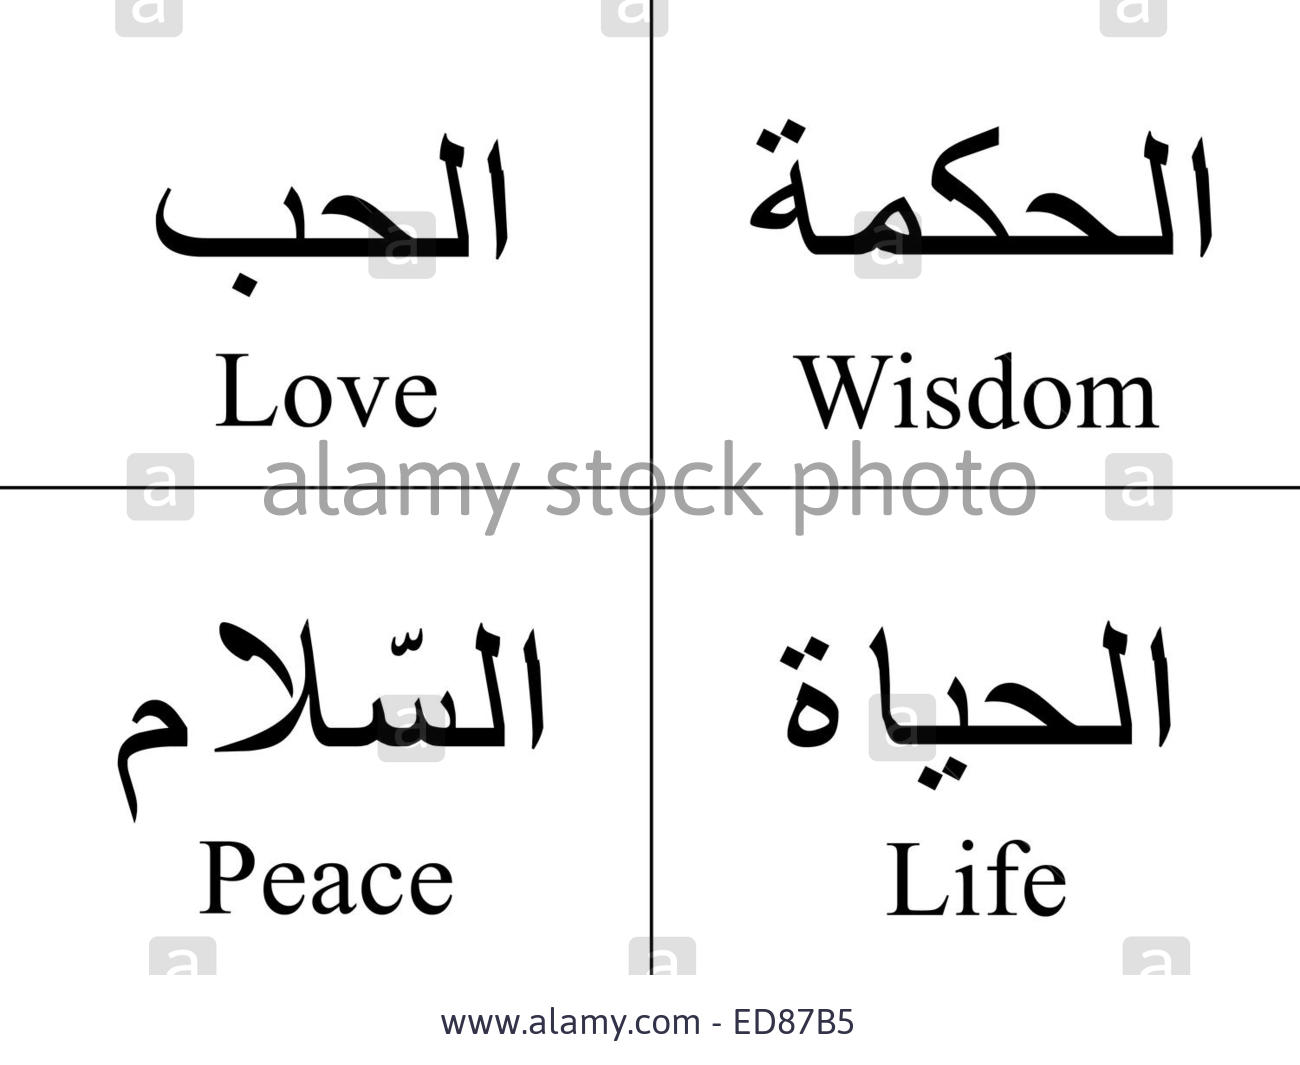 Life Quotes In Arabic With English Translation Endearing 15 Arabic Tattoos Designs And Meanings